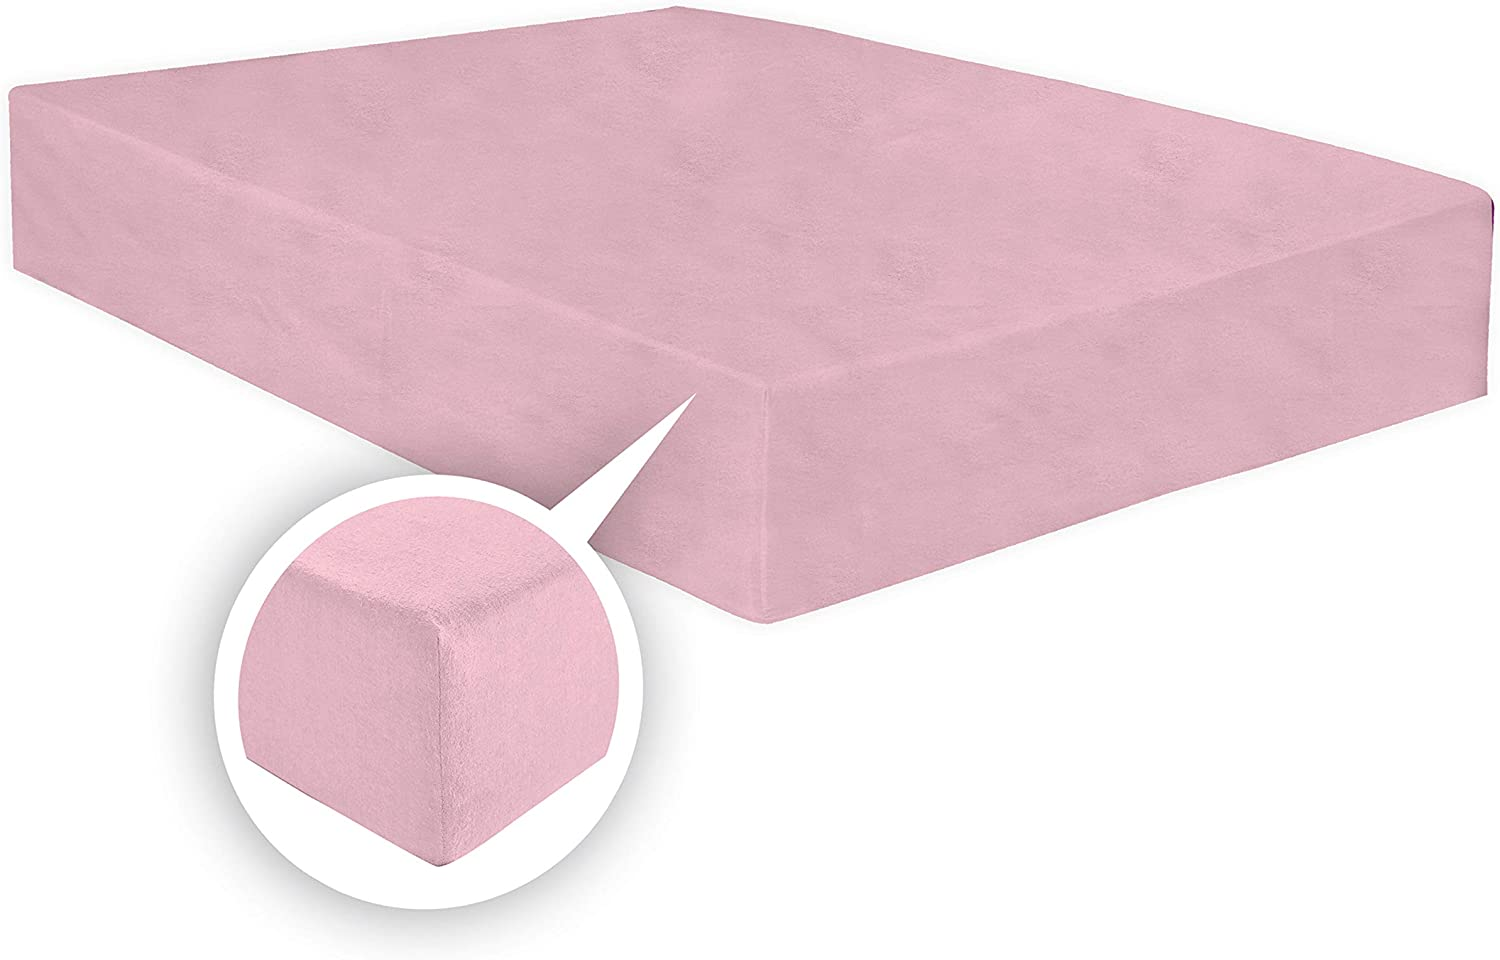 White, Pair of pillowcase ARLINENS Thermal Flannelette Fitted Sheet 25cm 100/% Brushed Soft Cotton available in 7 colours